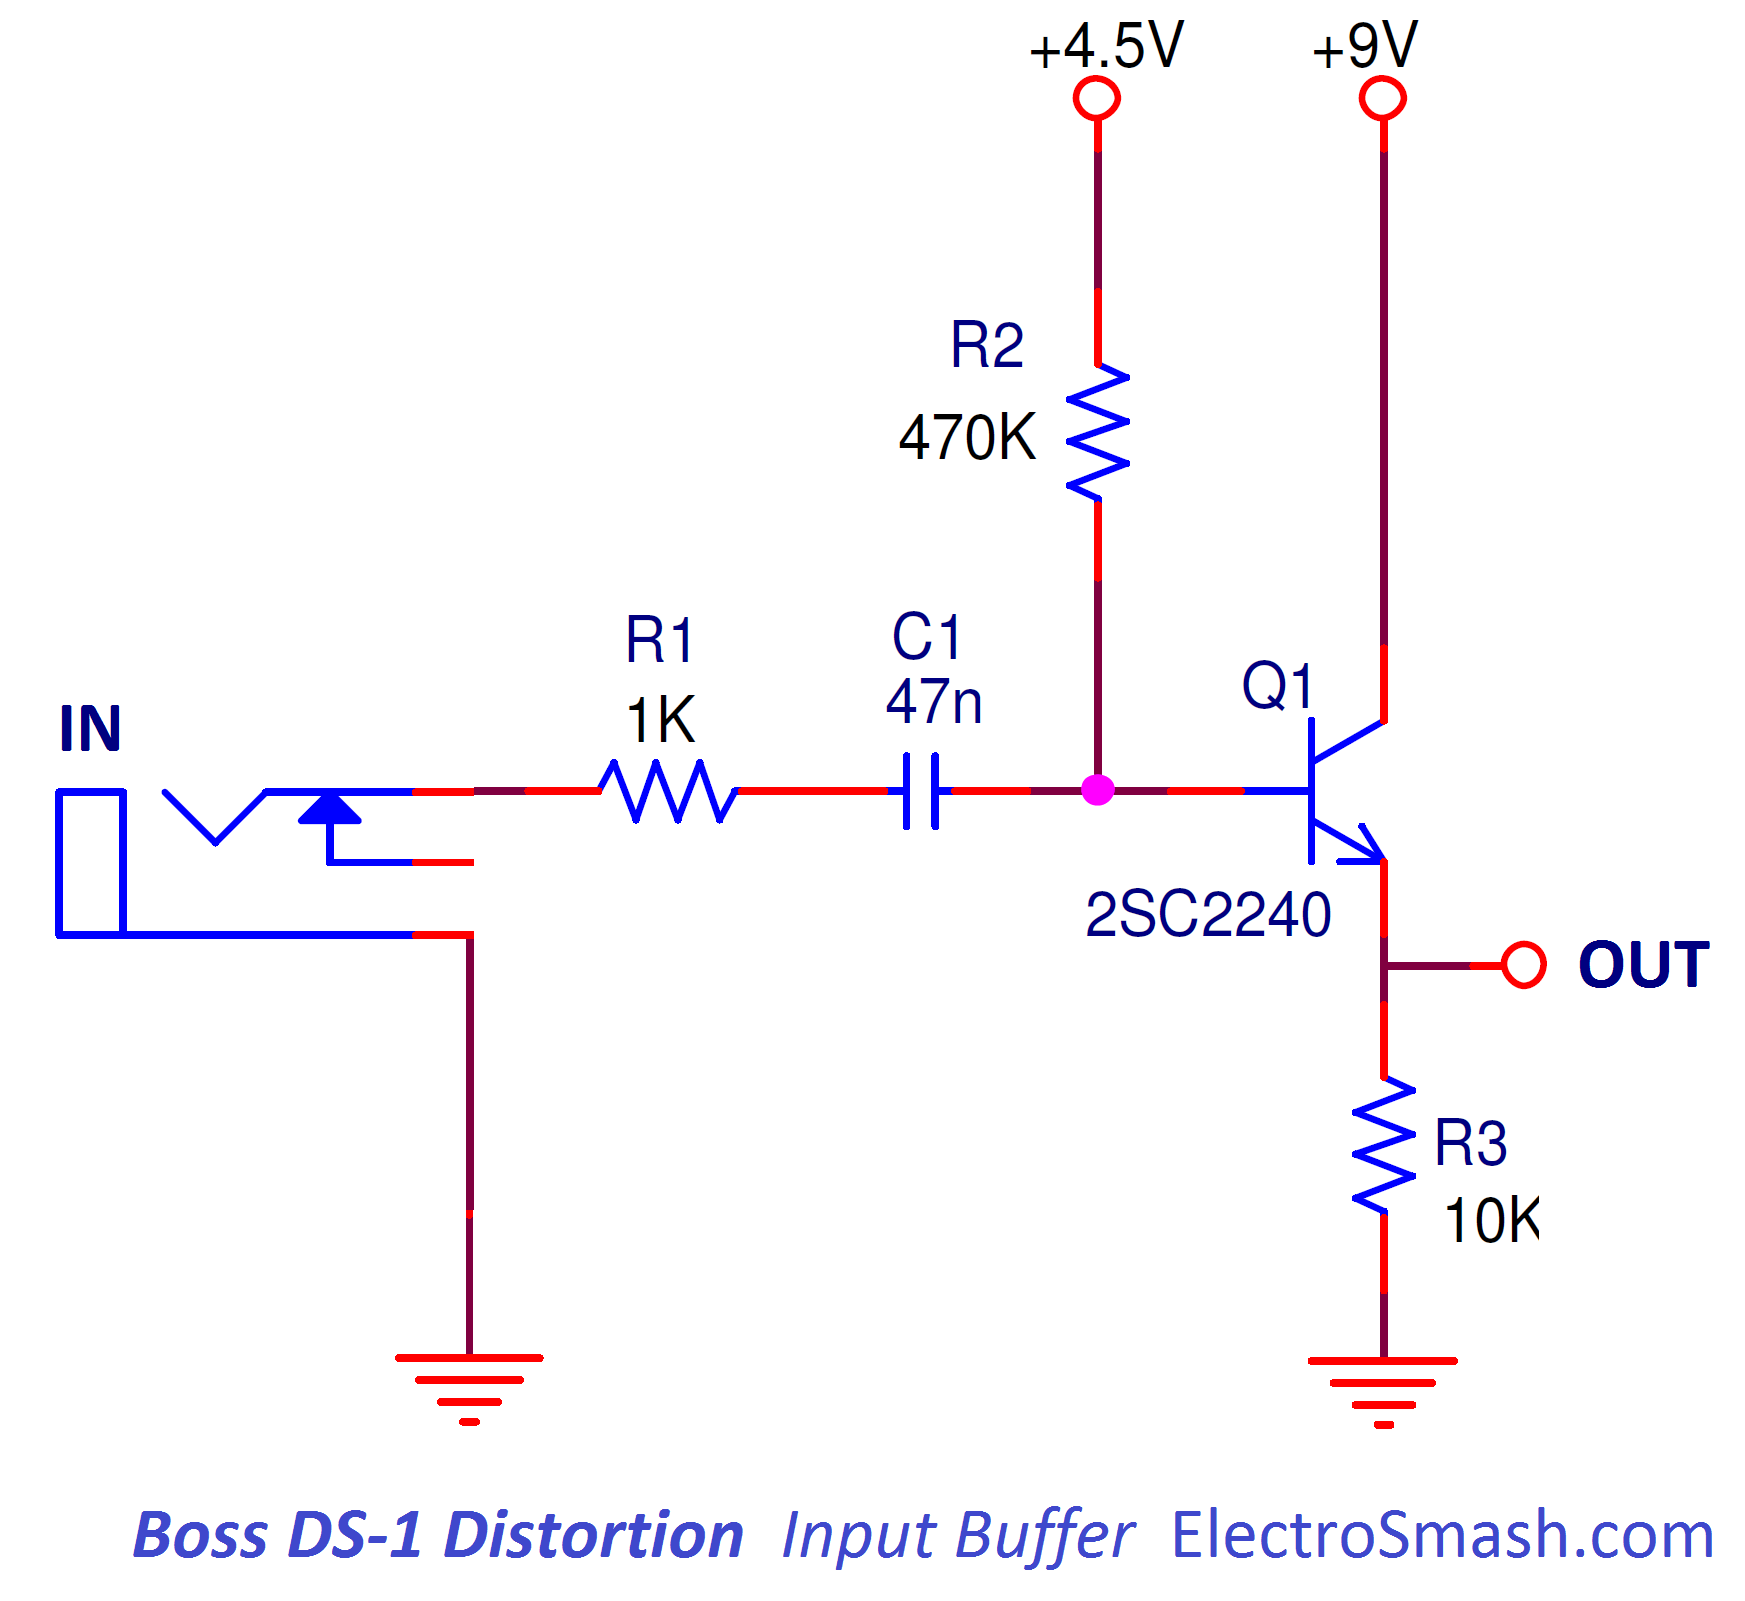 Electrosmash Boss Ds1 Distortion Analysis 3pdt Wiring Diagram Input Buffer